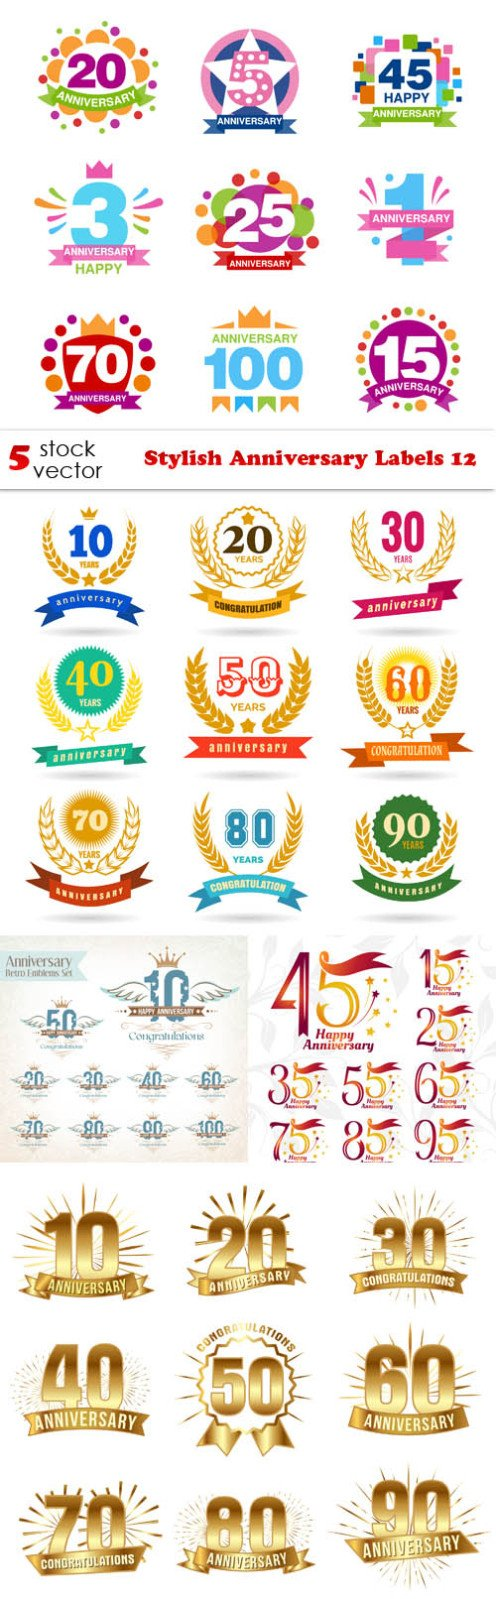 Vectors - Stylish Anniversary Labels 12